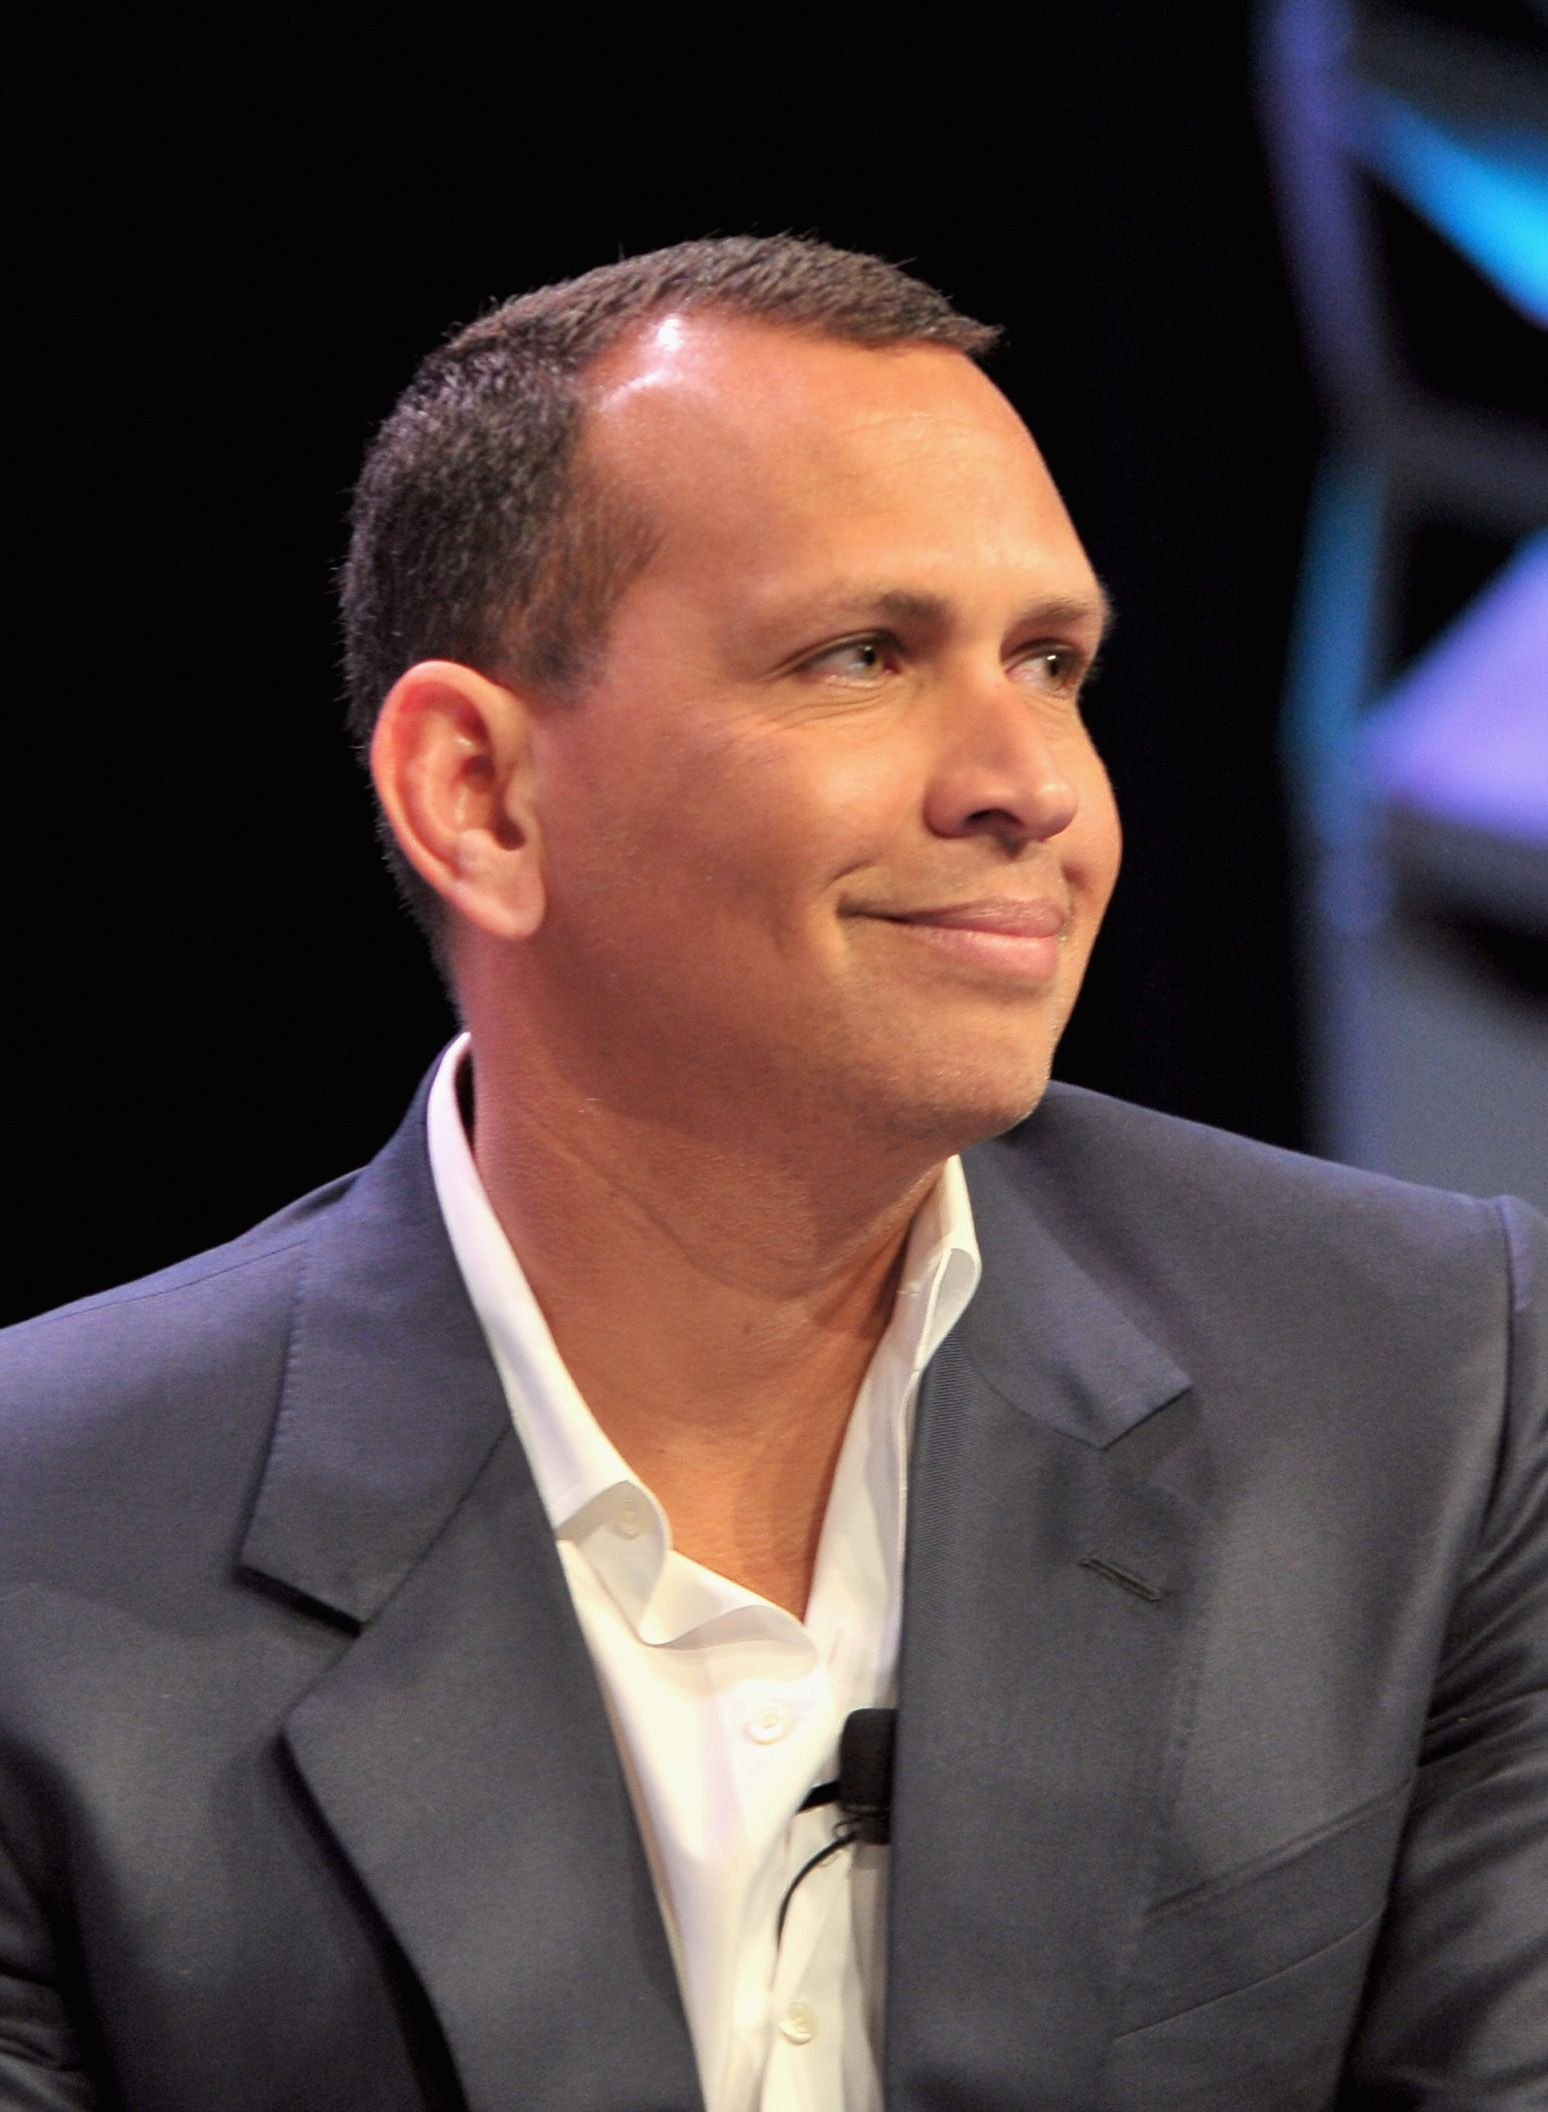 Alex Rodriguez onstage at Alex Rodriguez: Baseball, Business & Redemption w/CNBC during SXSW at Austin Convention Center on March 12, 2018 in Austin, Texas | Photo: Getty Images